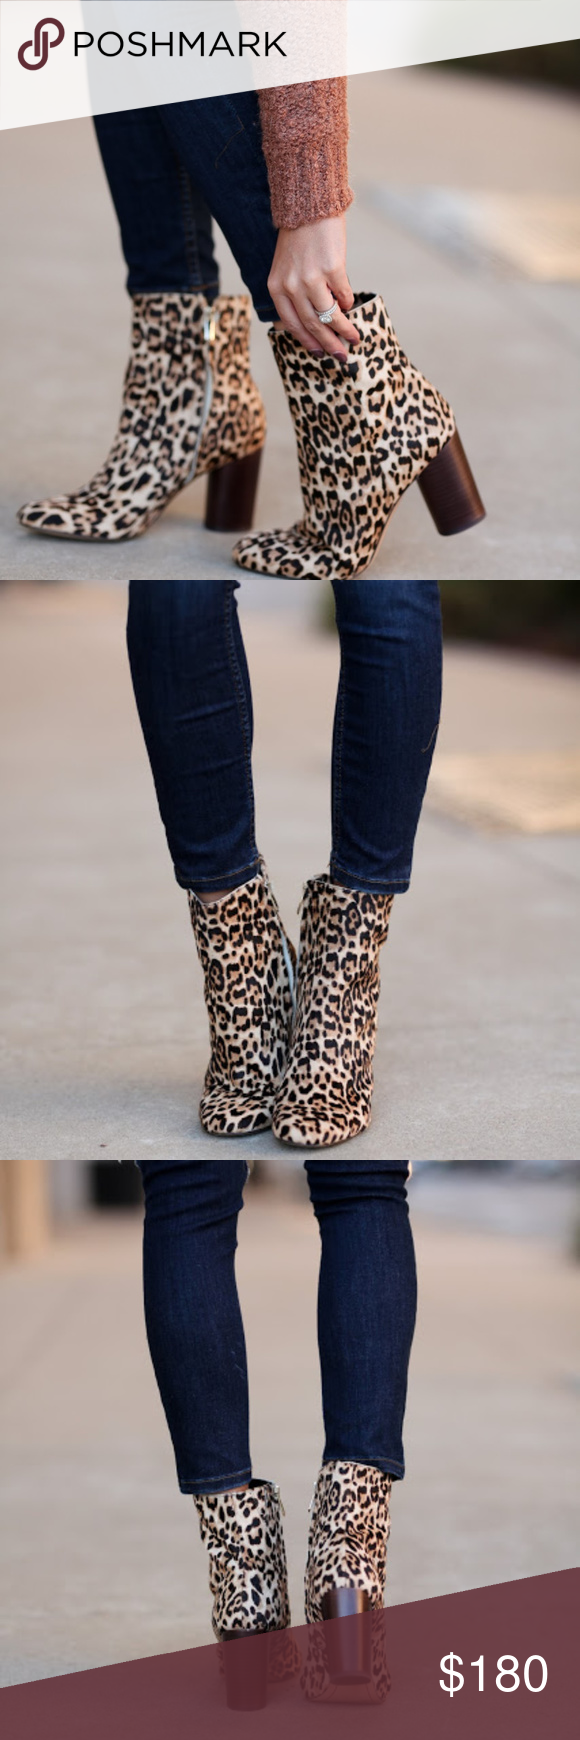 9abaacd96e46 NWT Sam Edelman Corra Leopard Booties A timeless style that goes with  virtually everything in your